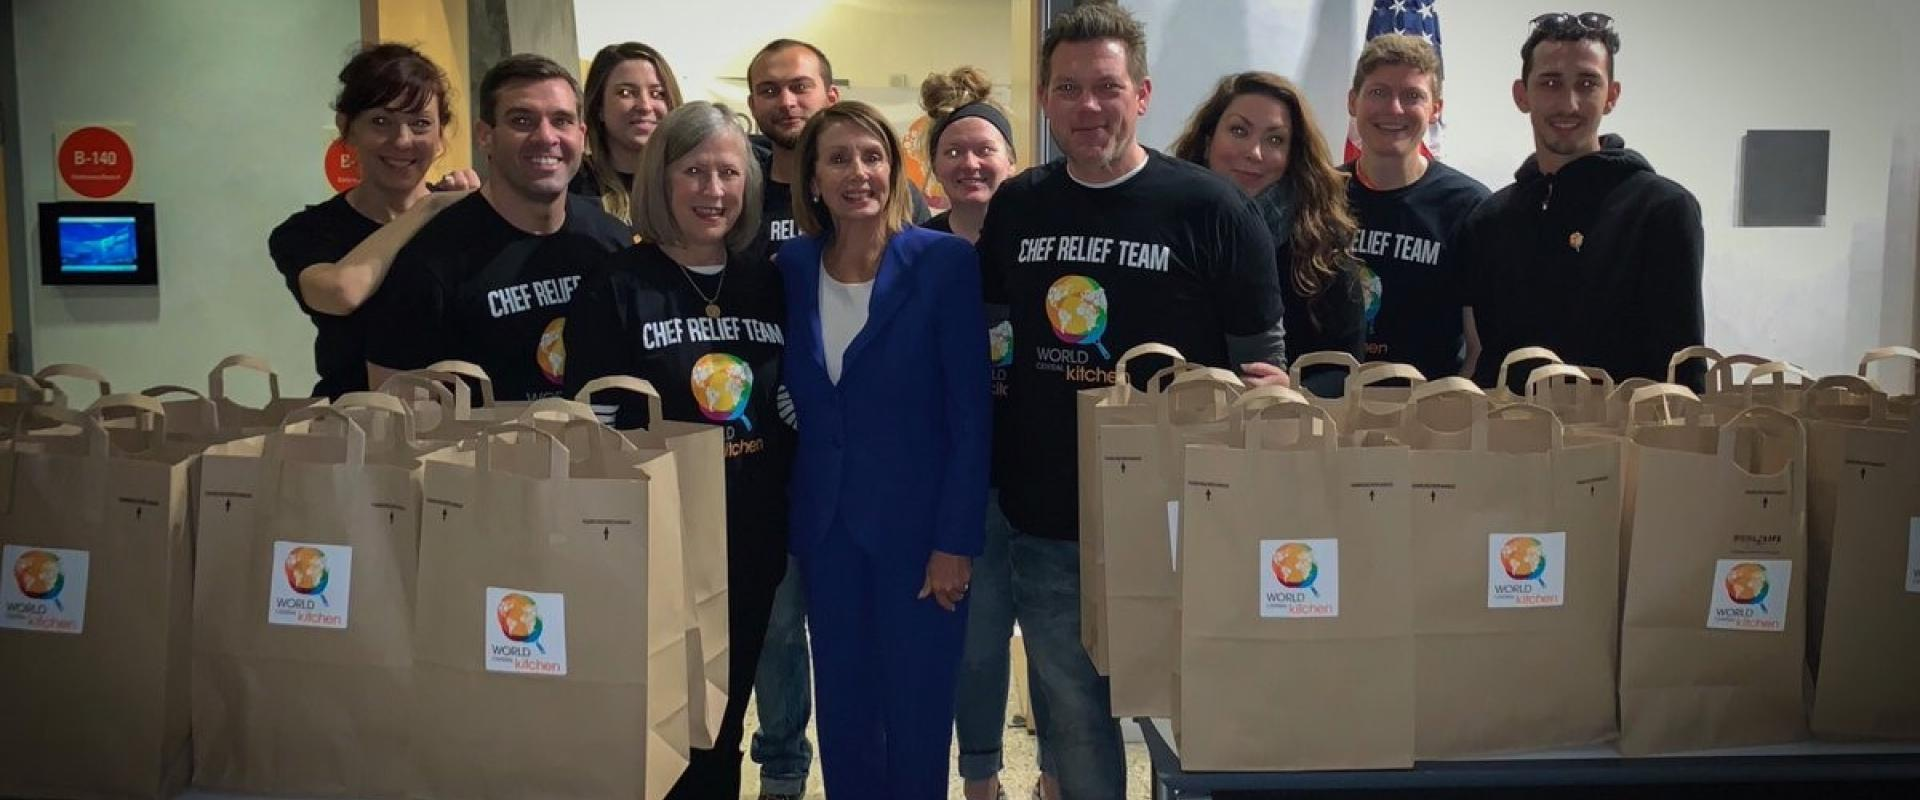 Congresswoman Pelosi joins Tyler Florence, host of Food Network shows, and Chefs for Feds team volunteers at the World Central Kitchen operation serving meals to 11,000 Bay Area furloughed federal workers affected by the Trump Shutdown.